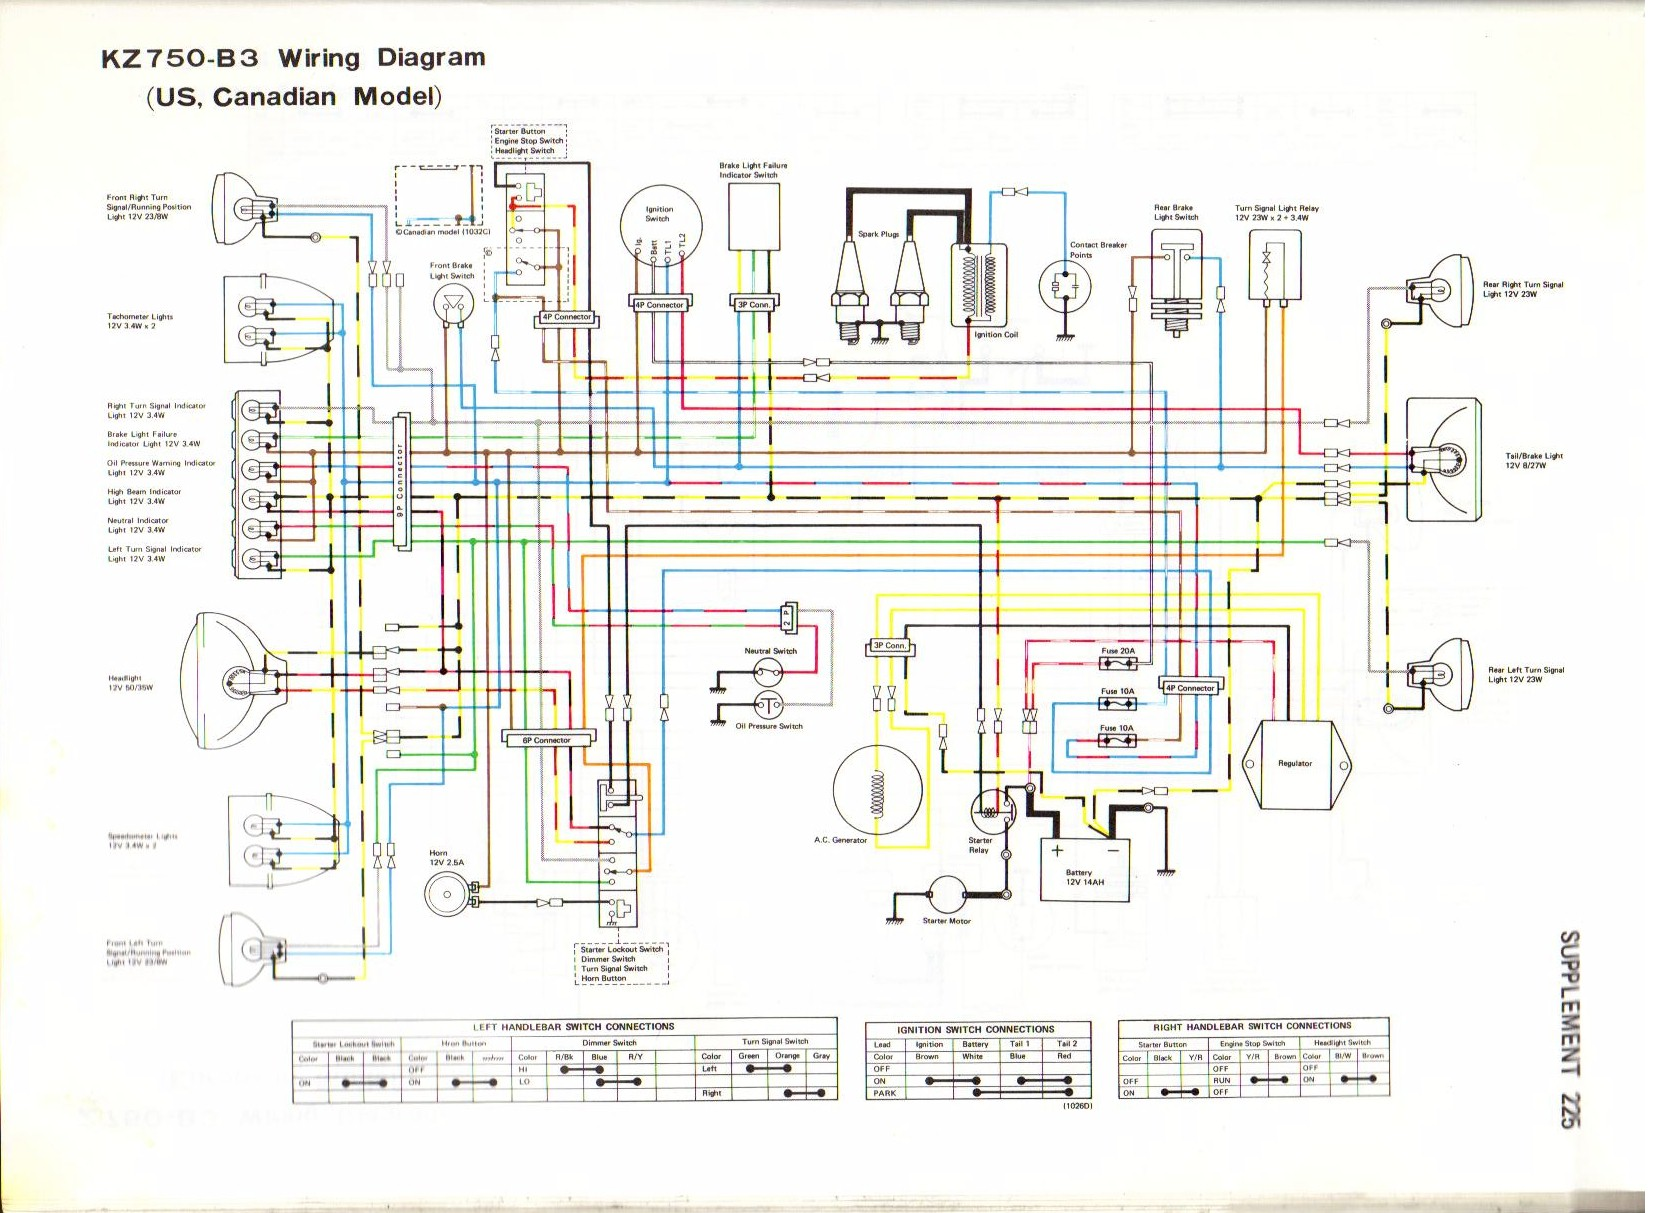 Kawasaki Kz750 Ltd Wiring Diagram - wiring diagram diode-other -  diode-other.exitmedia.it | 1980 Kz1000 Wiring Diagram Color |  | ExitMedia